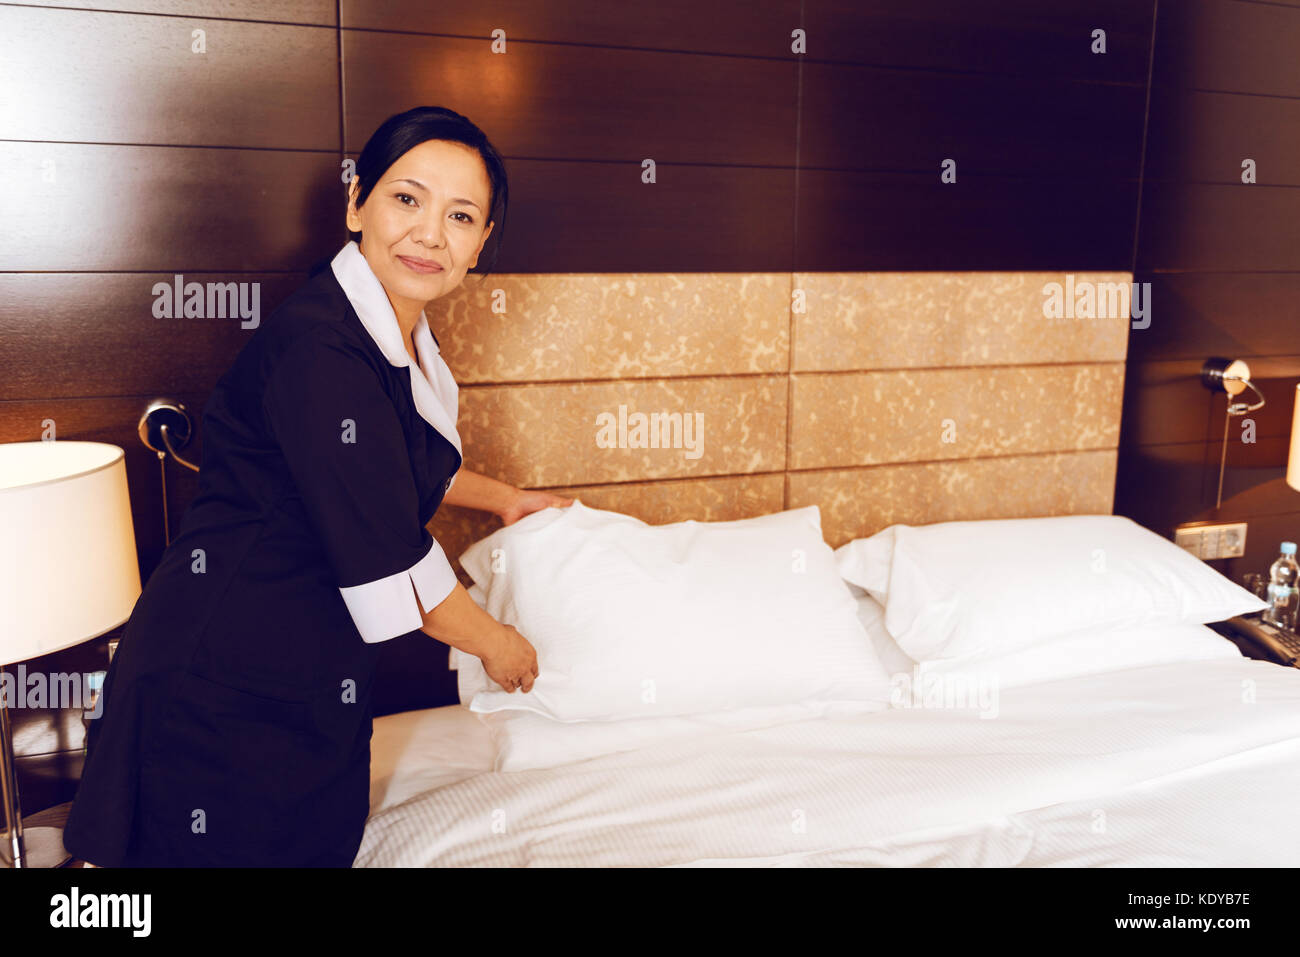 Competent hotel staff being at work - Stock Image